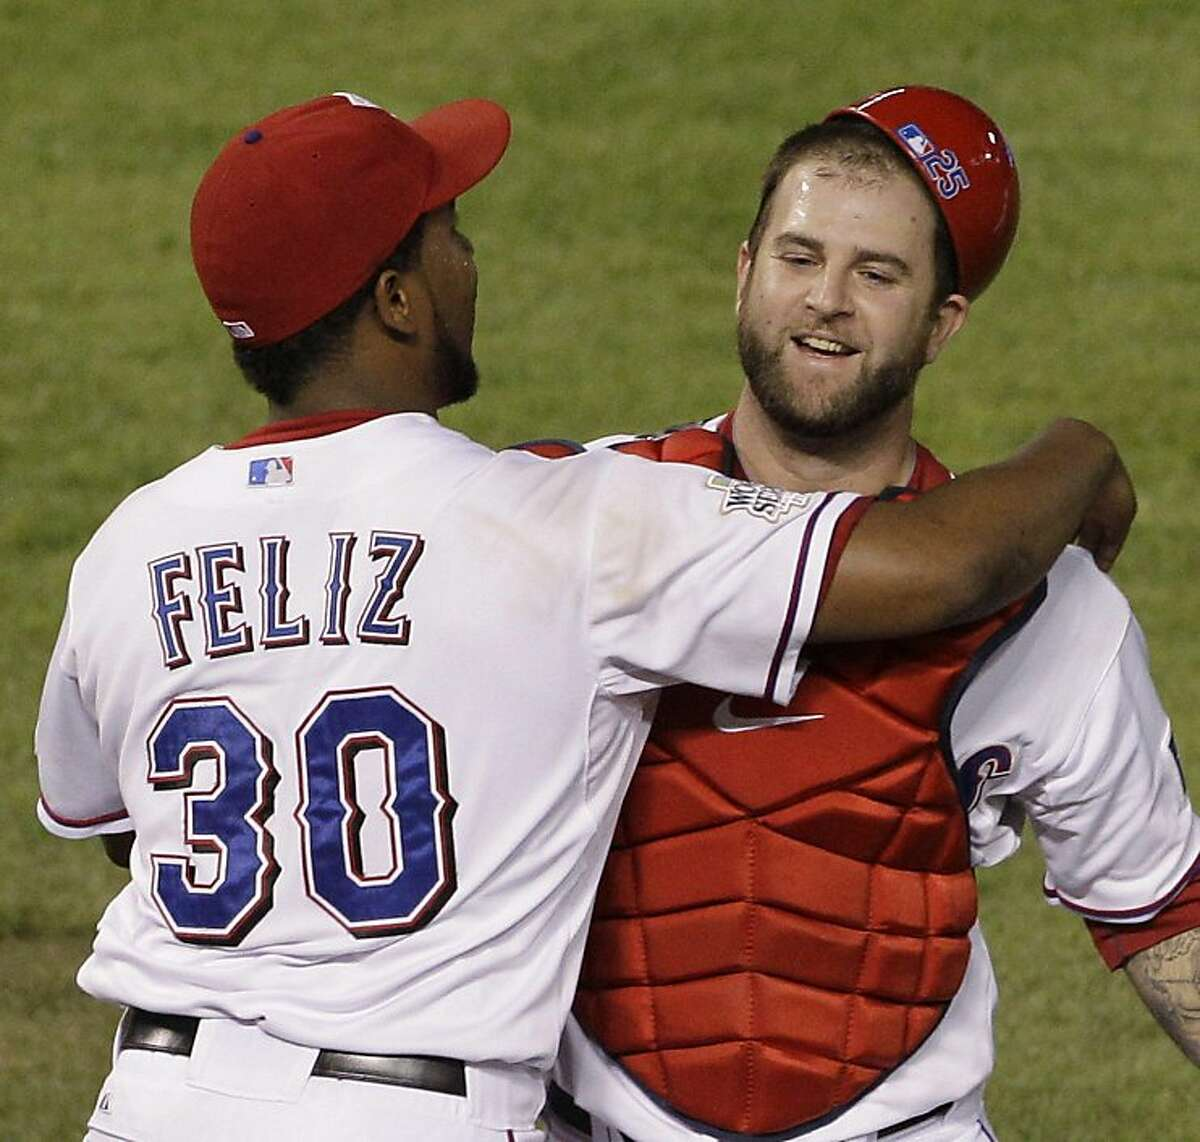 Texas Rangers' Neftali Feliz and Mike Napoli celebrate after Game 5 of baseball's World Series against the St. Louis Cardinals Monday, Oct. 24, 2011, in Arlington, Texas. The Rangers won 4-2 to take a 3-2 lead in the series. (AP Photo/Paul Sancya) Ran on: 10-25-2011 Rangers closer Neftali Feliz and catcher Mike Napoli, who had the game-winning hit, celebrate after winning Game 5. Ran on: 10-25-2011 Rangers closer Neftali Feliz and catcher Mike Napoli, who had the game-winning hit, celebrate after winning Game 5.